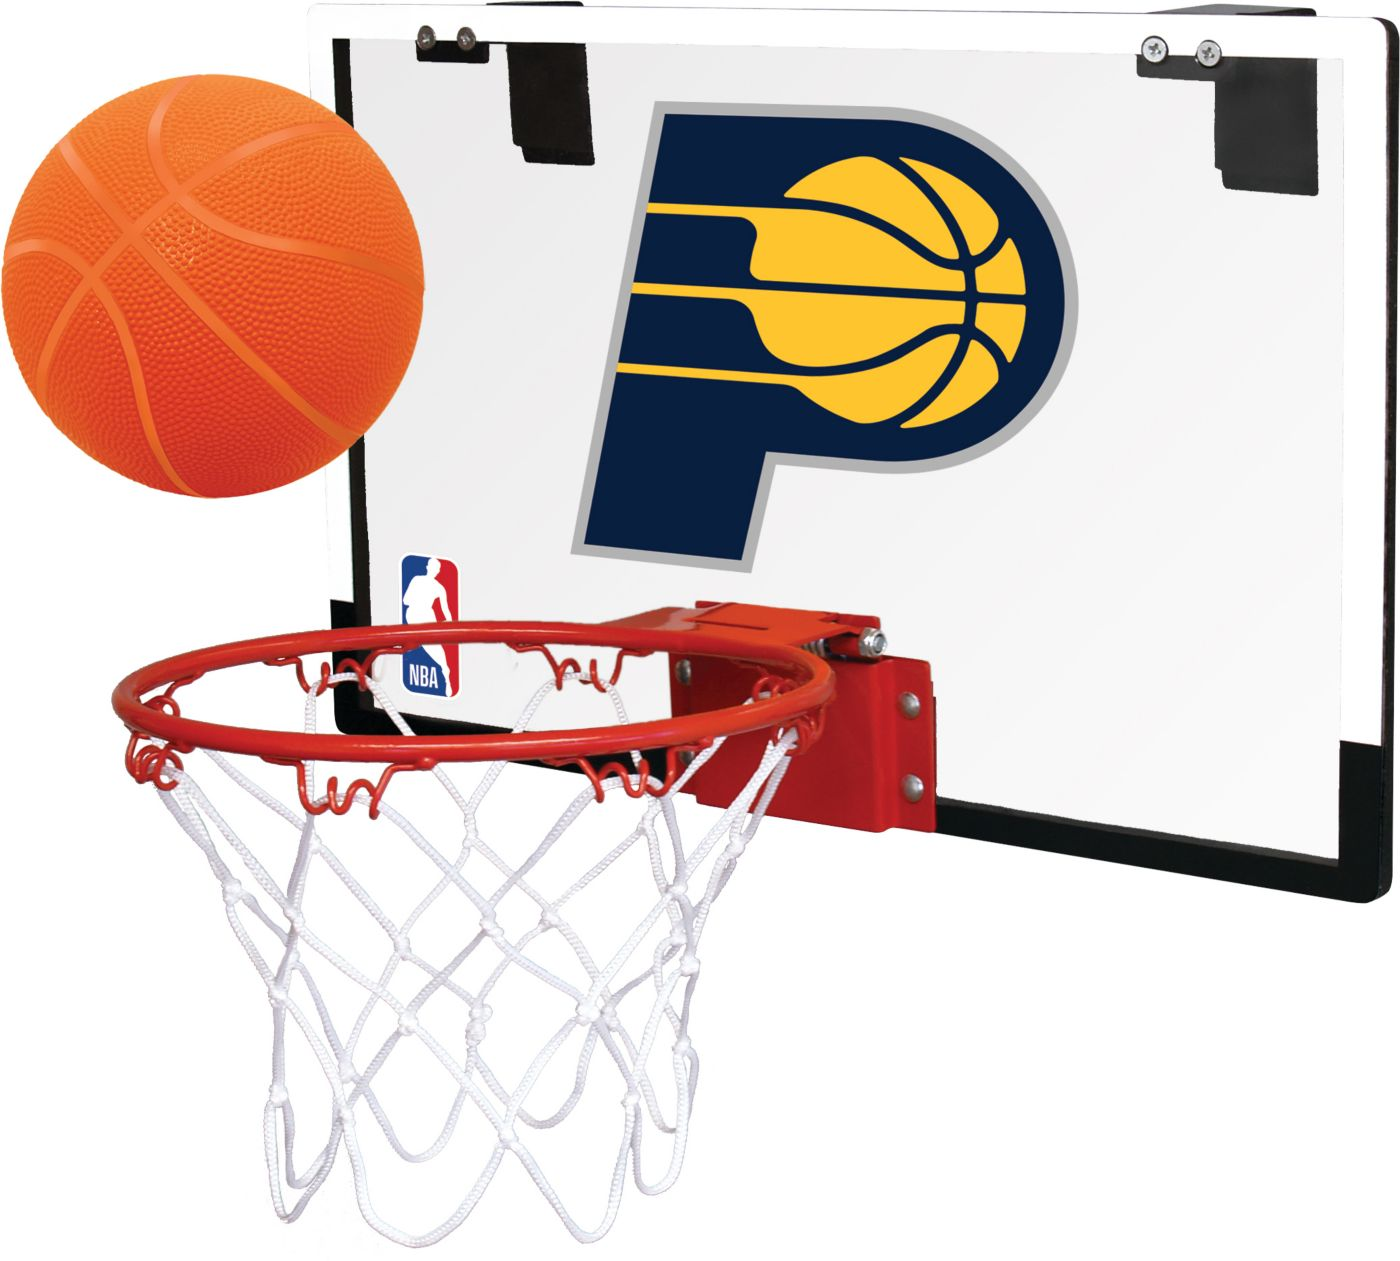 Rawlings Indiana Pacers Polycarbonate Hoop Set